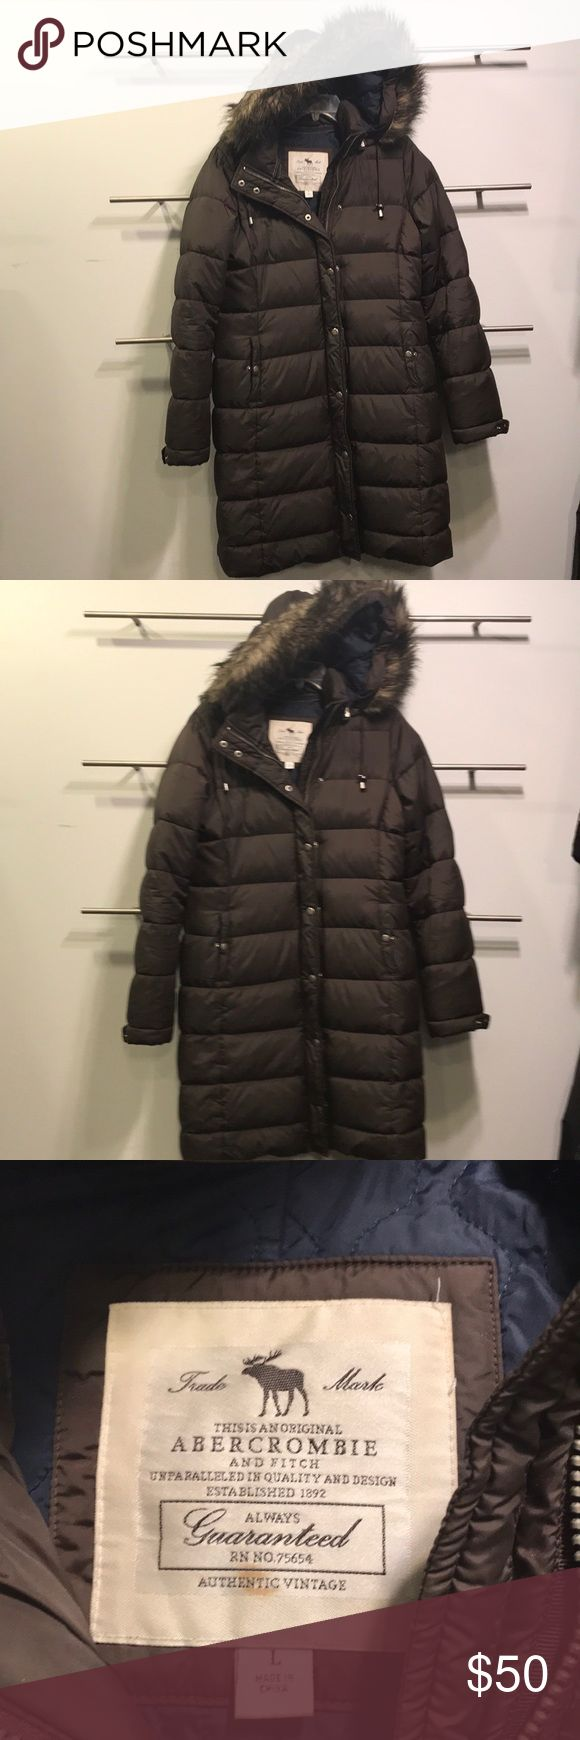 ABERCROMBIE AND FITCH JACKET LONG AND HEAVY LARGE This is a Abercrombie and Fitch jacket. It is brown in color. It is long and heavy. Great for winter and in great condition. It is a size large. Abercrombie & Fitch Jackets & Coats Puffers